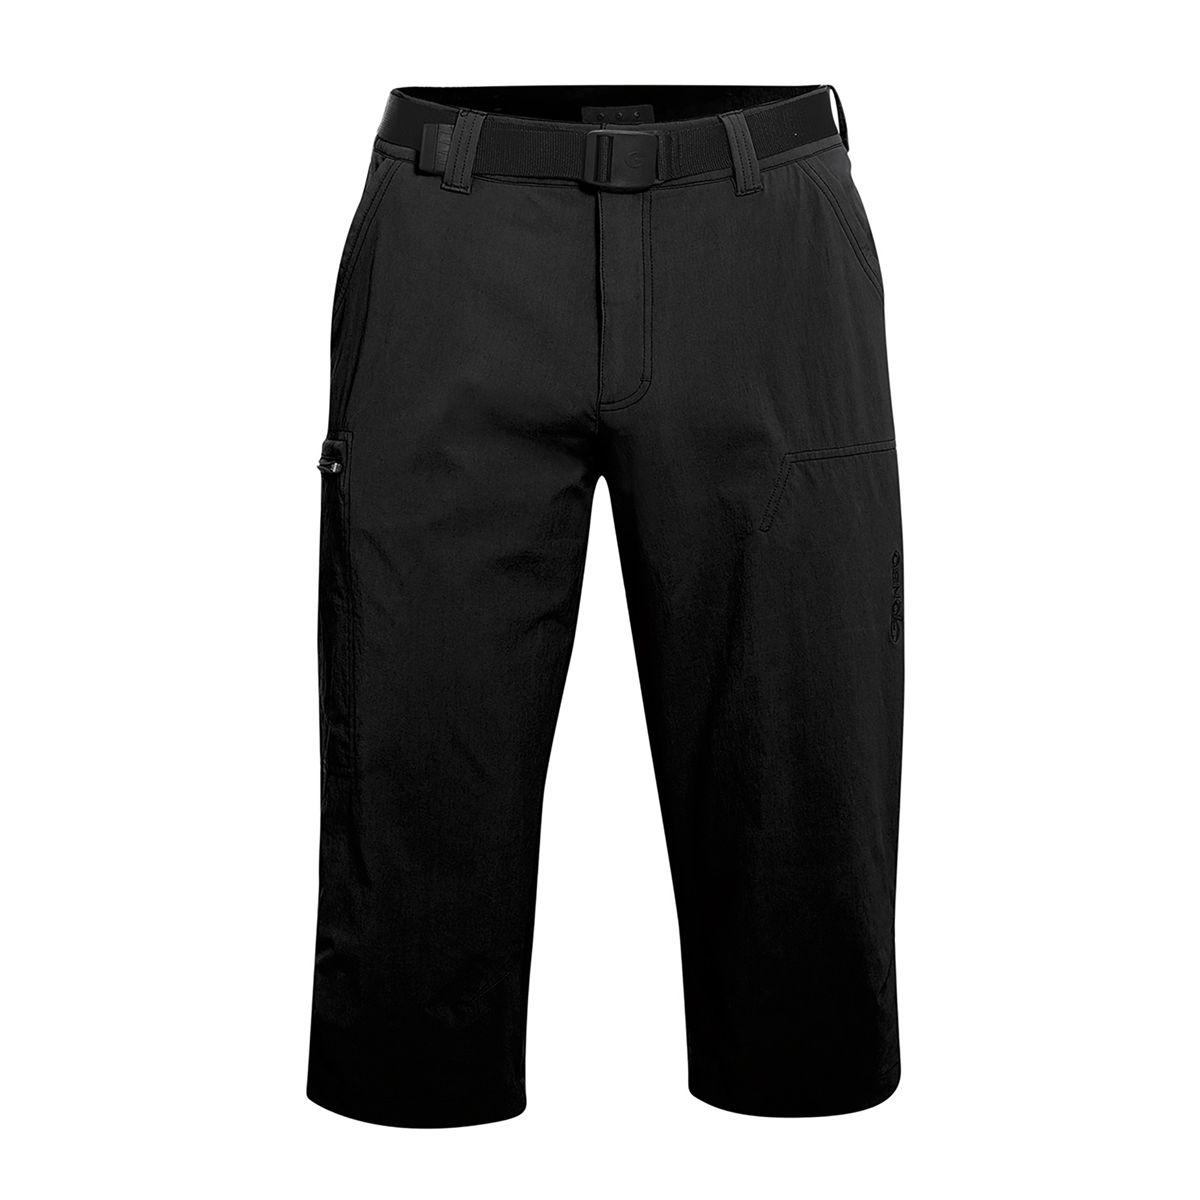 GONSO PORTO trousers | Trousers